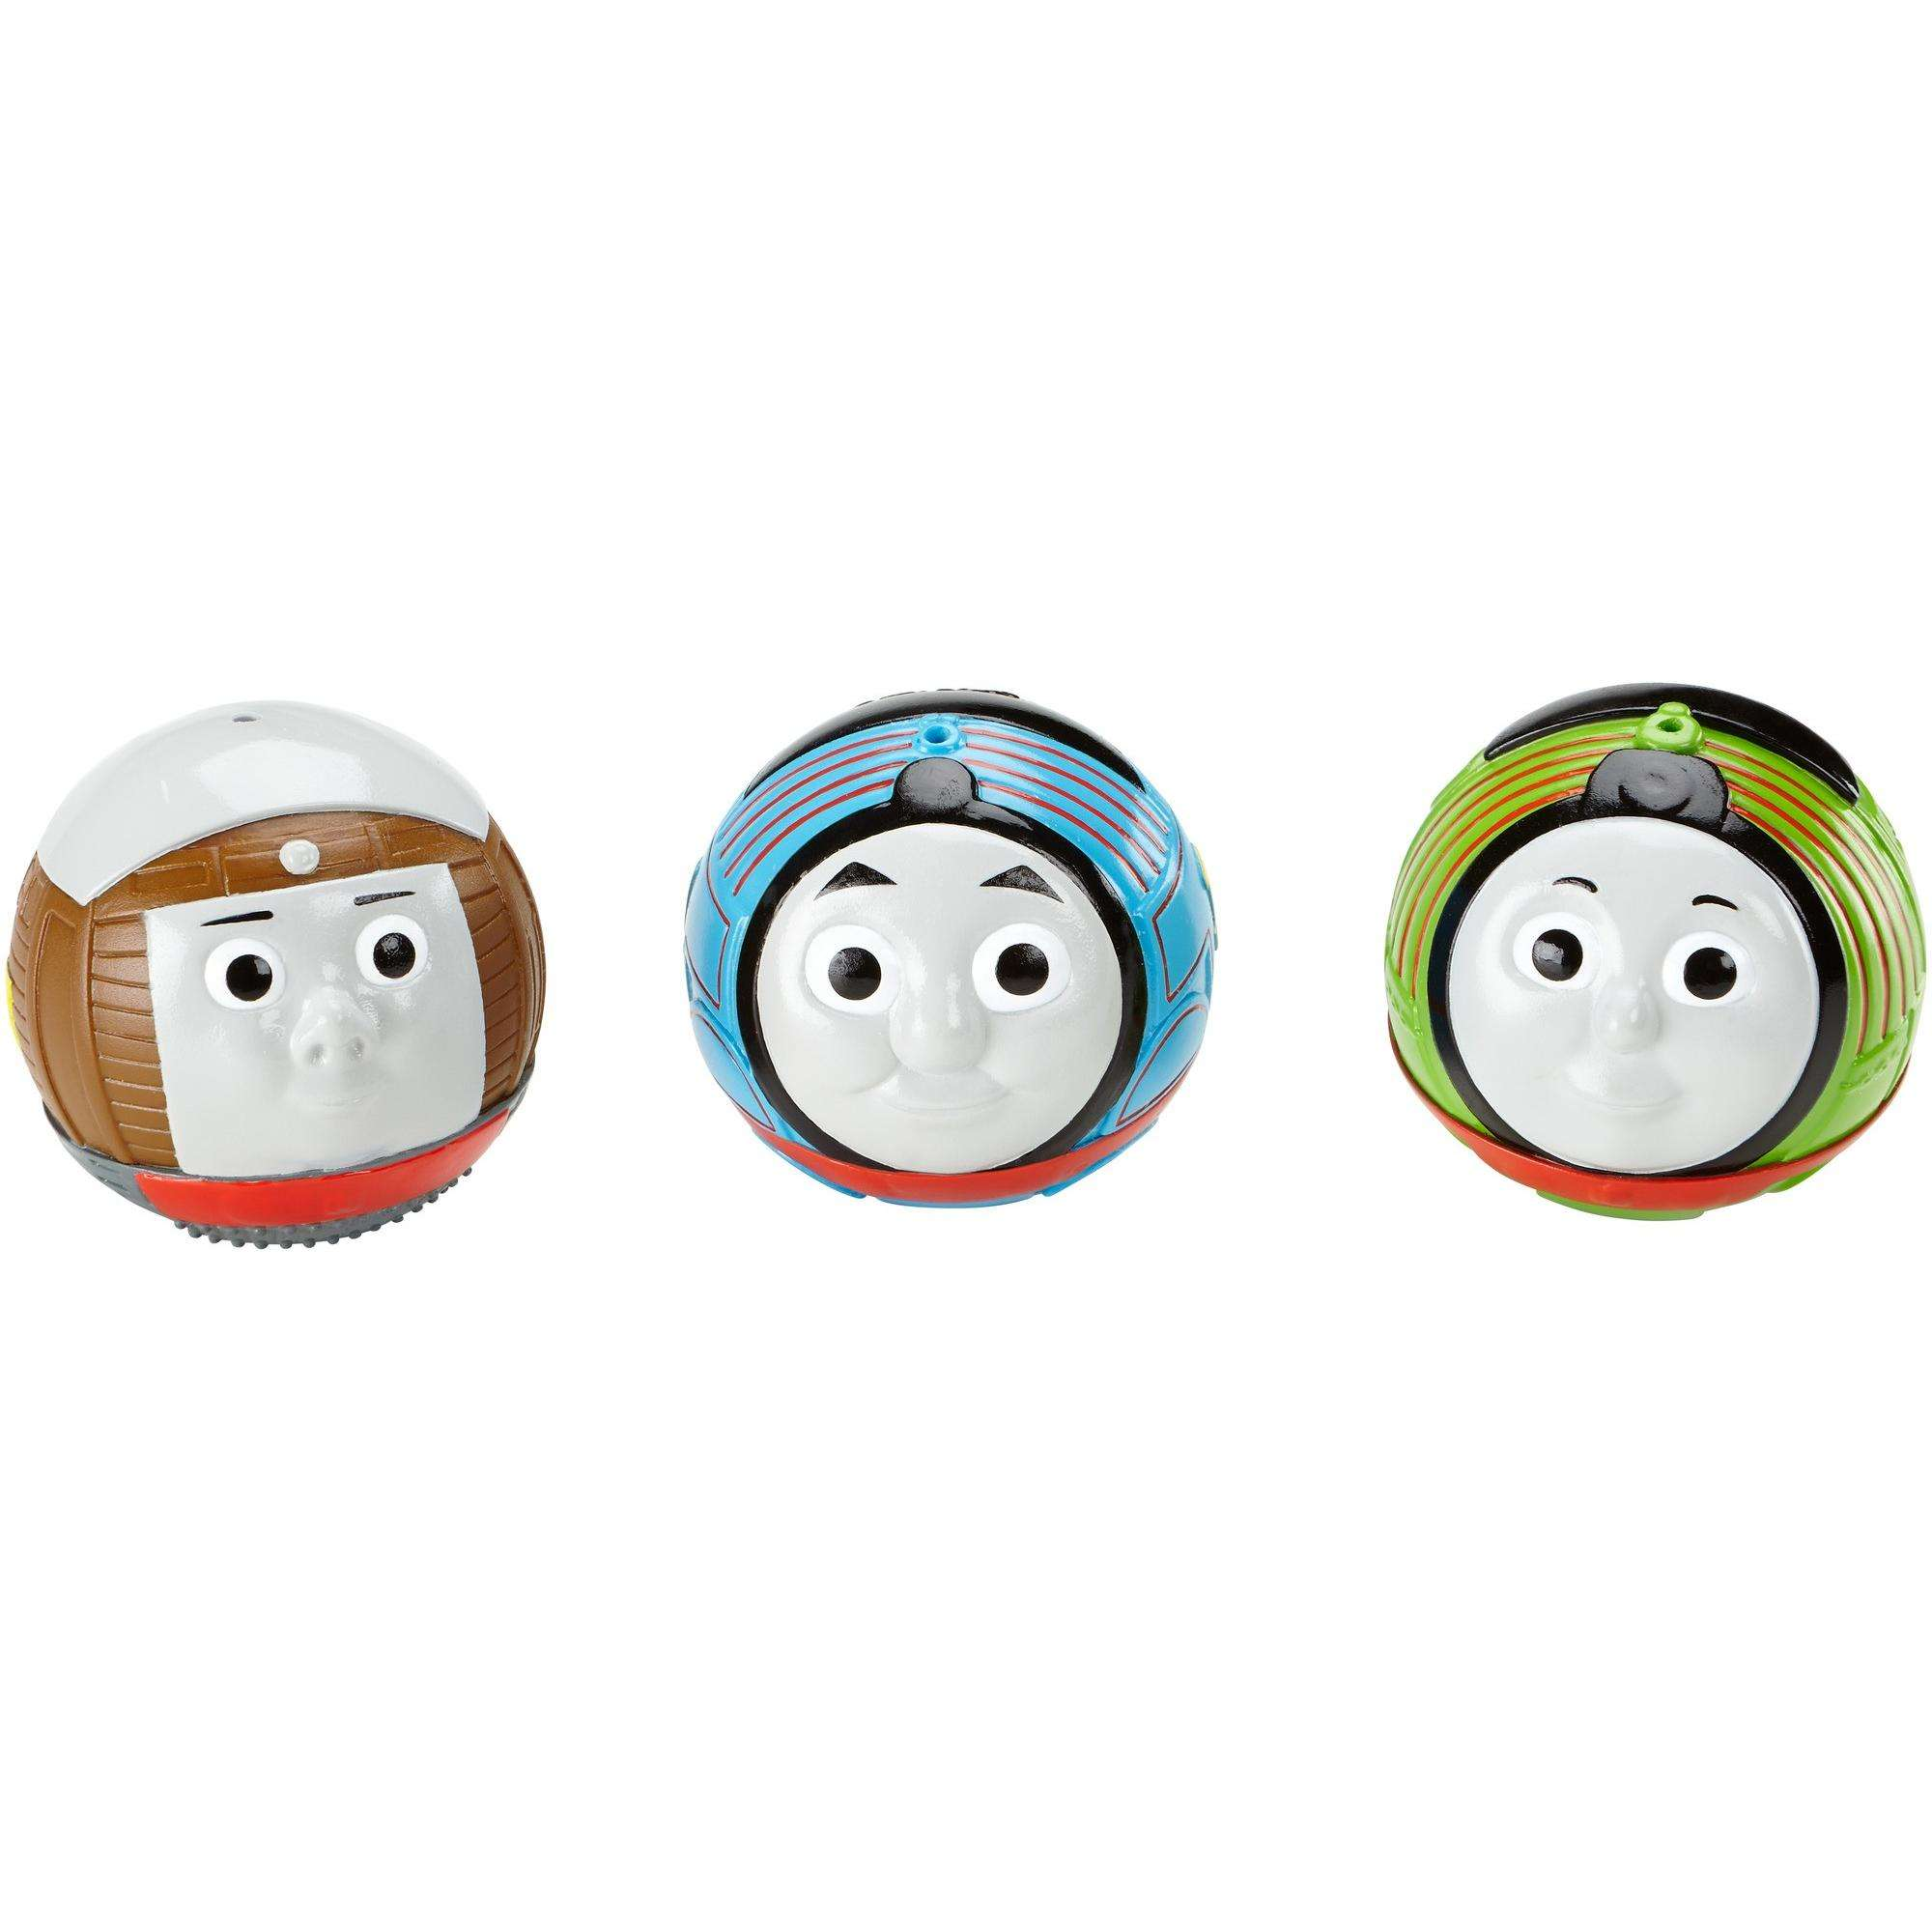 Thomas & Friends Rail Rollers, 3-Pack